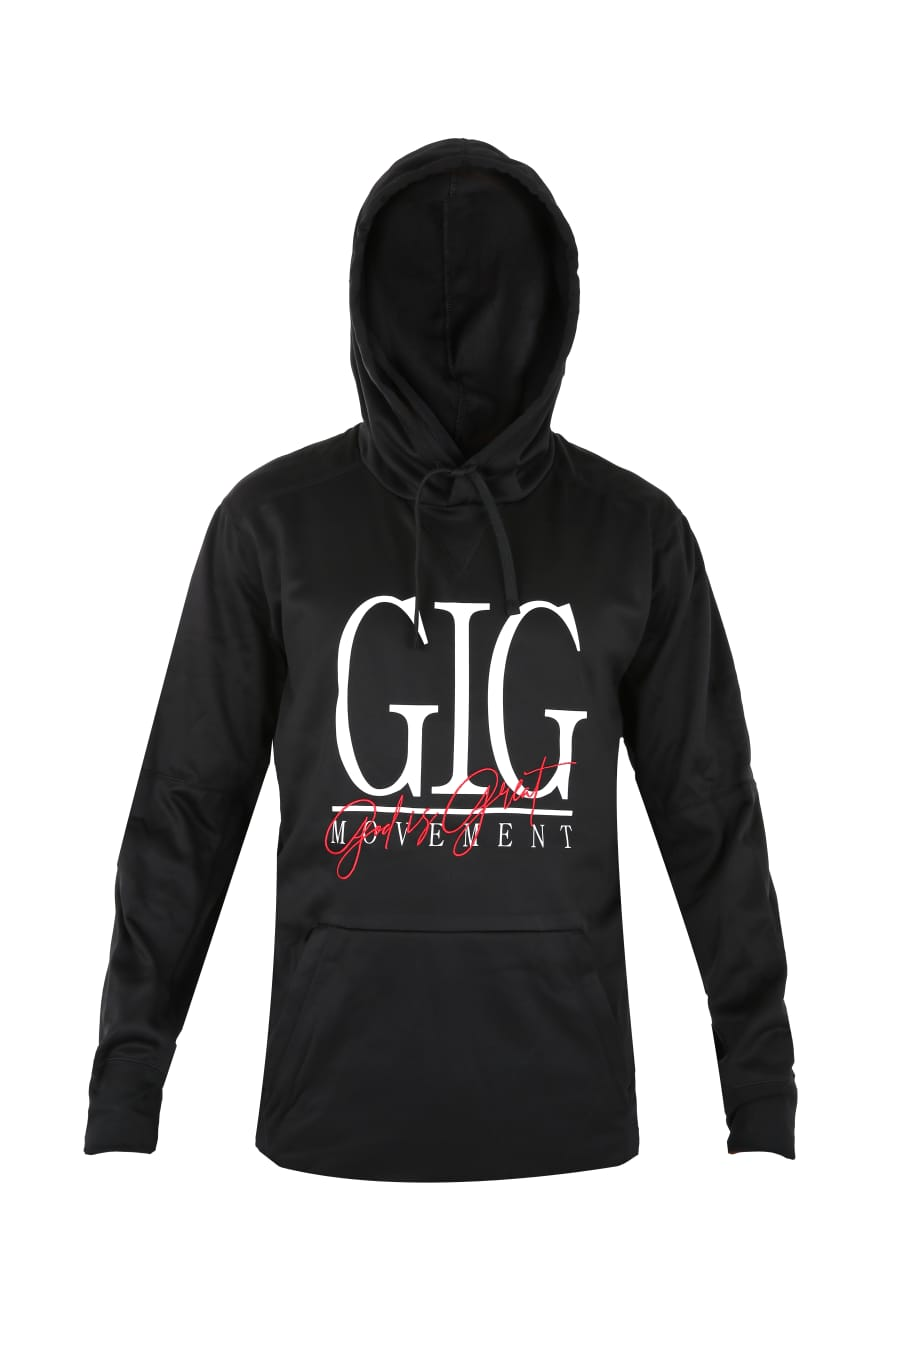 GiG Movement Black Hoodie